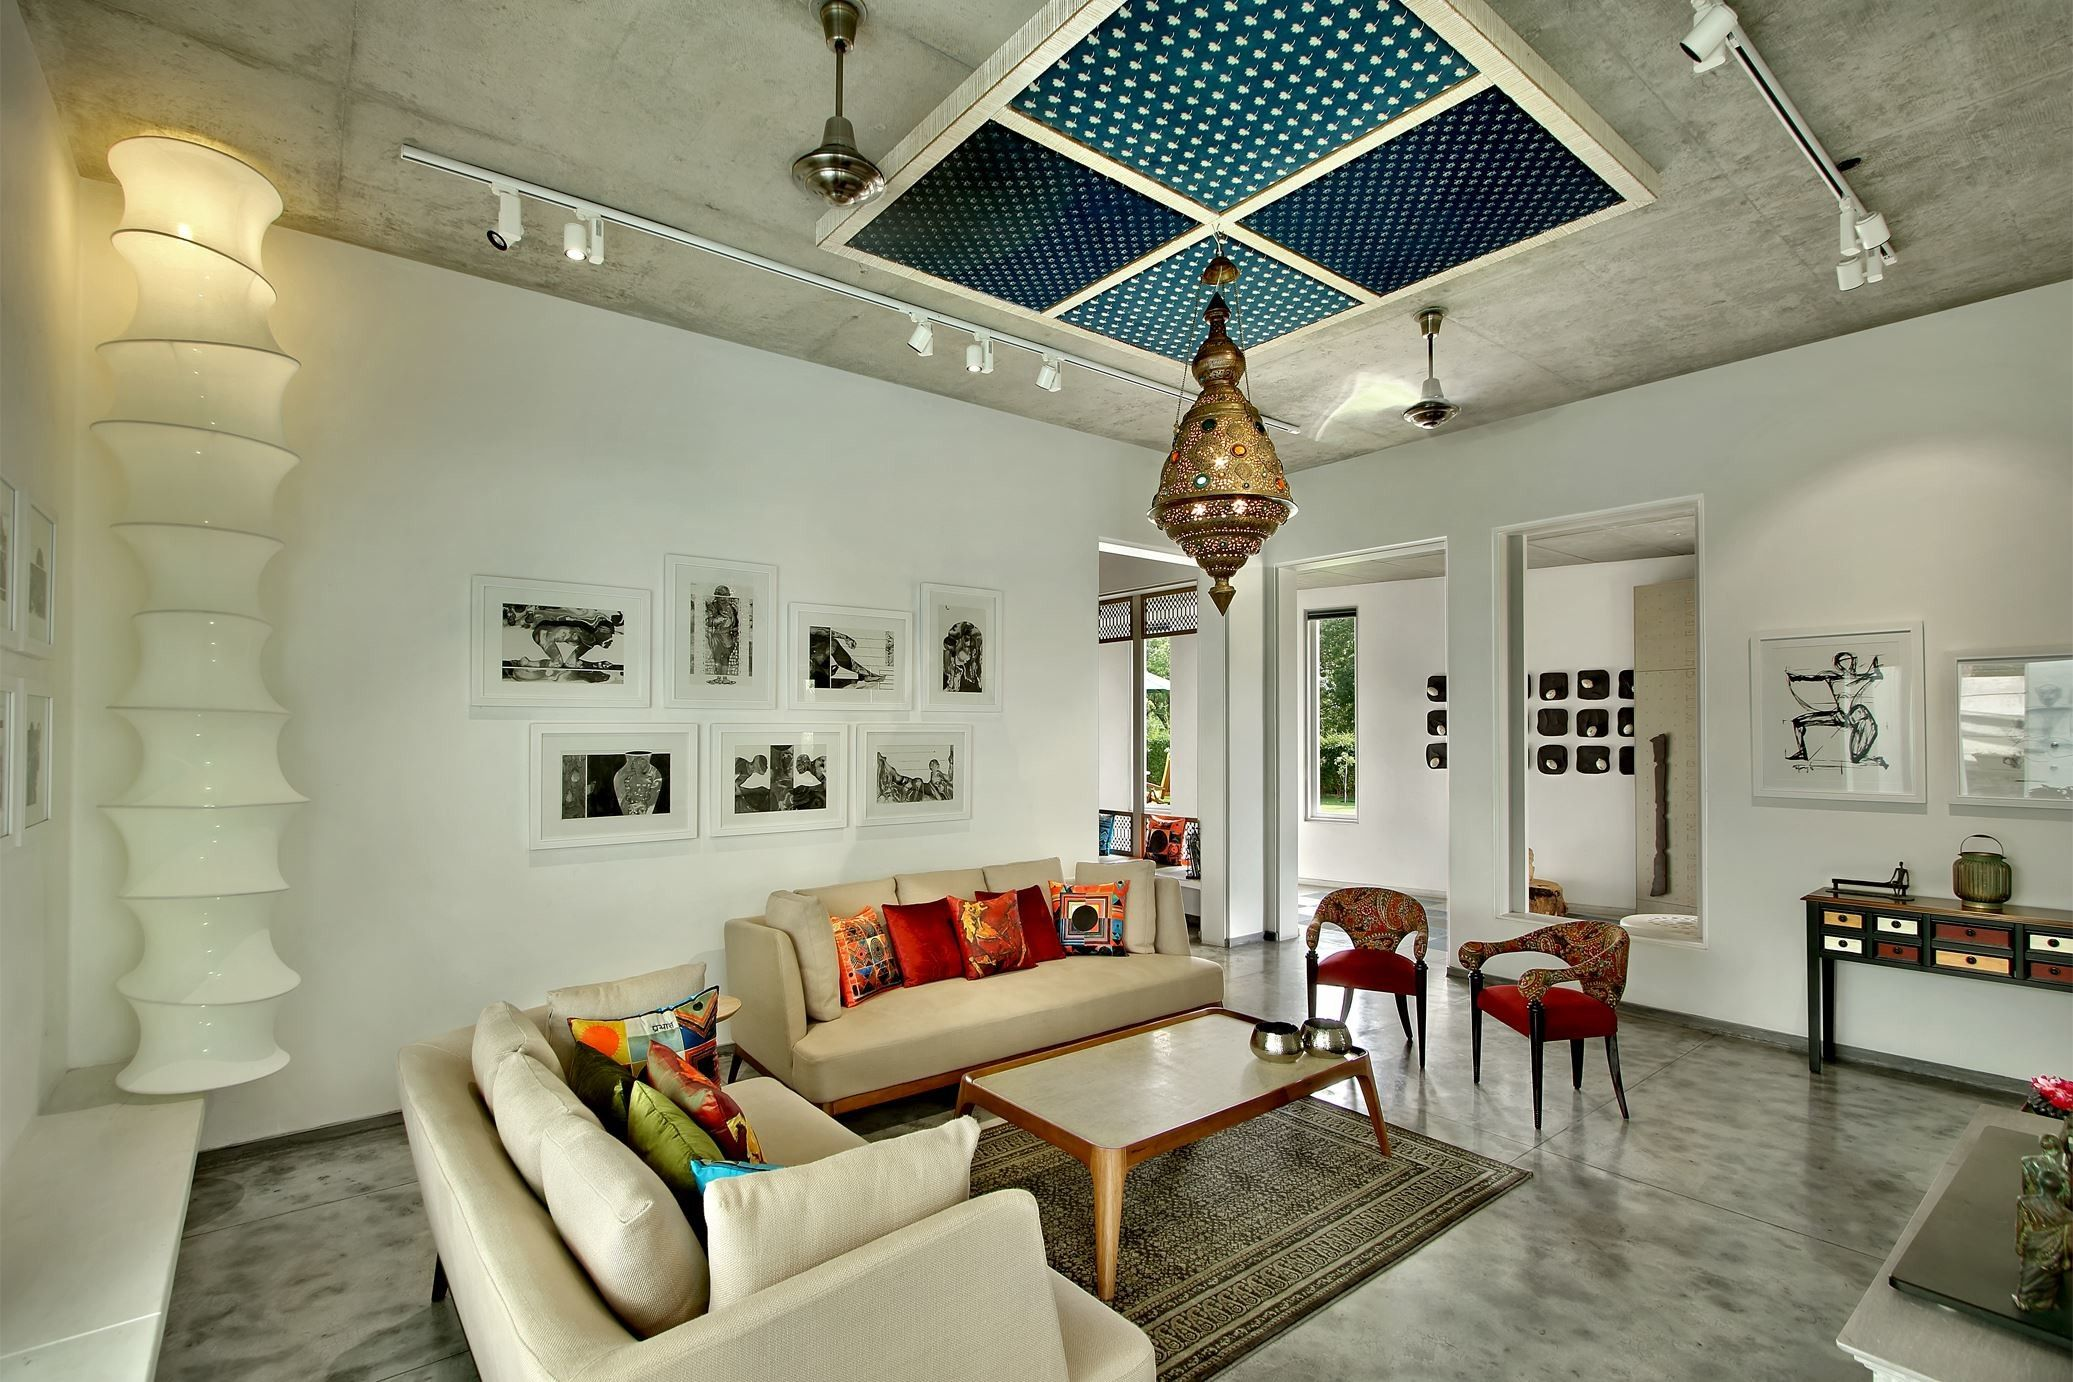 Living Room With Heavy Ceiling Made Out Of R.c.c. And Wooden Element With  Track Light And